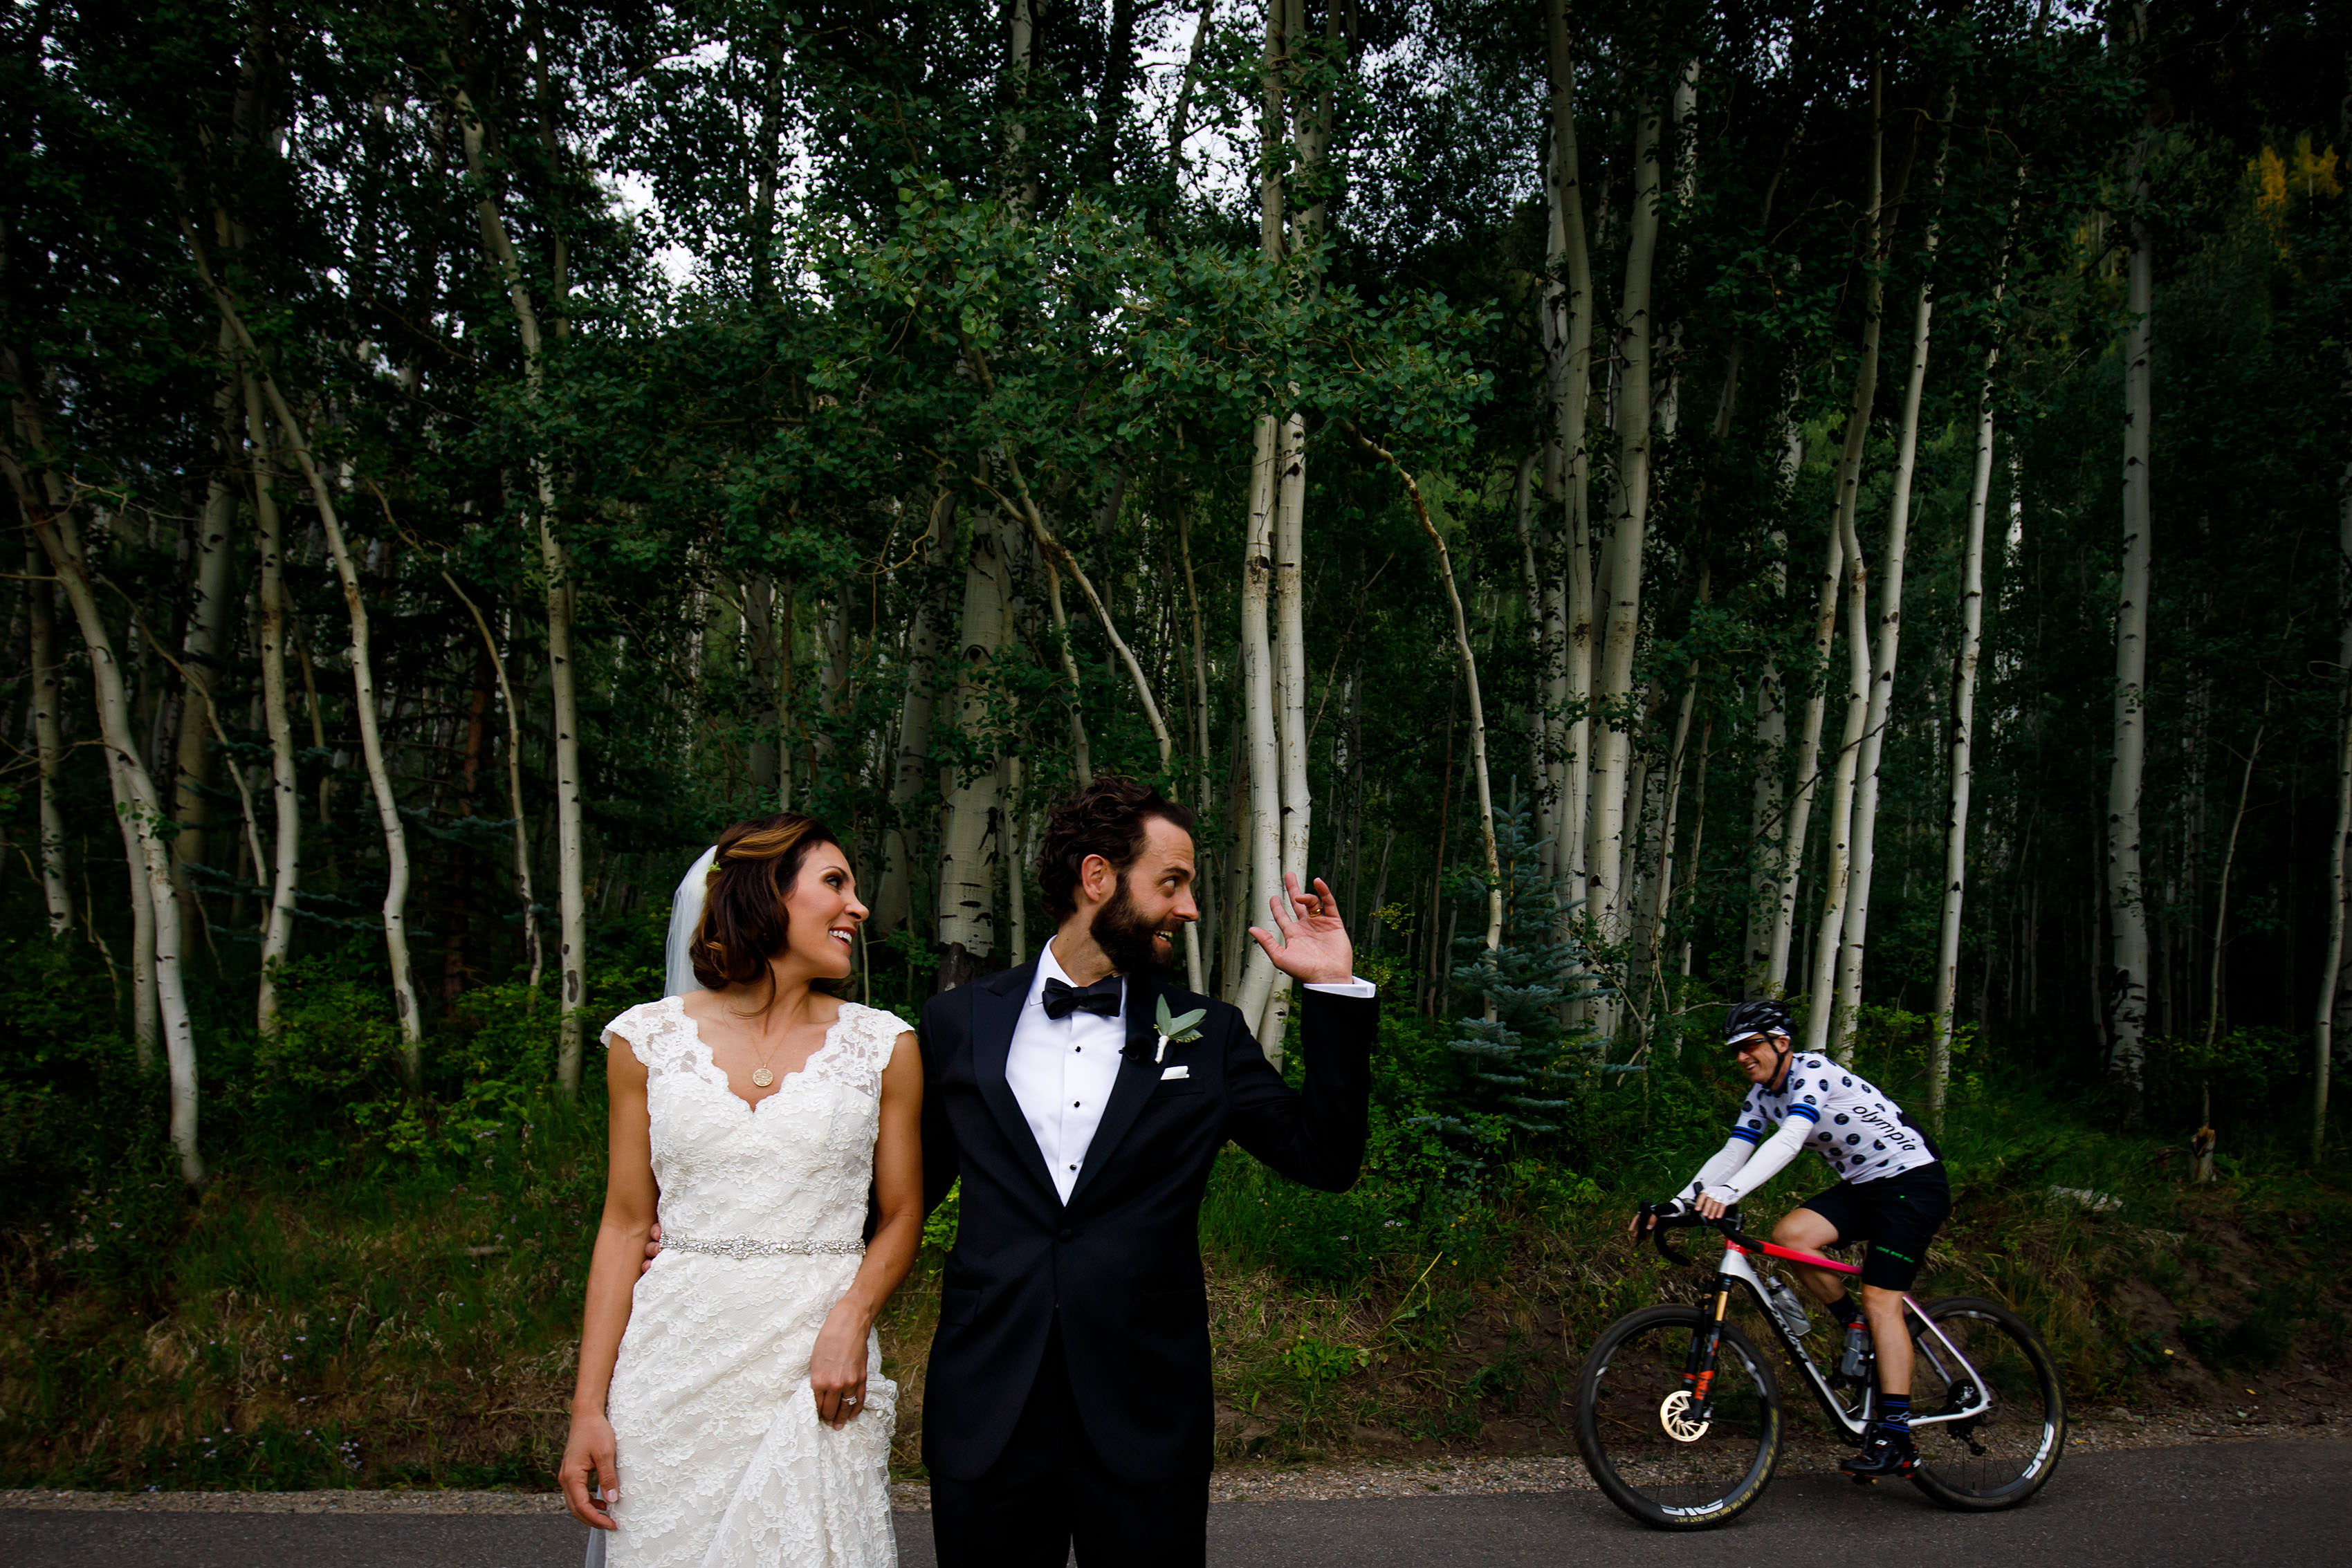 Christine and Stephen wave at a cyclist